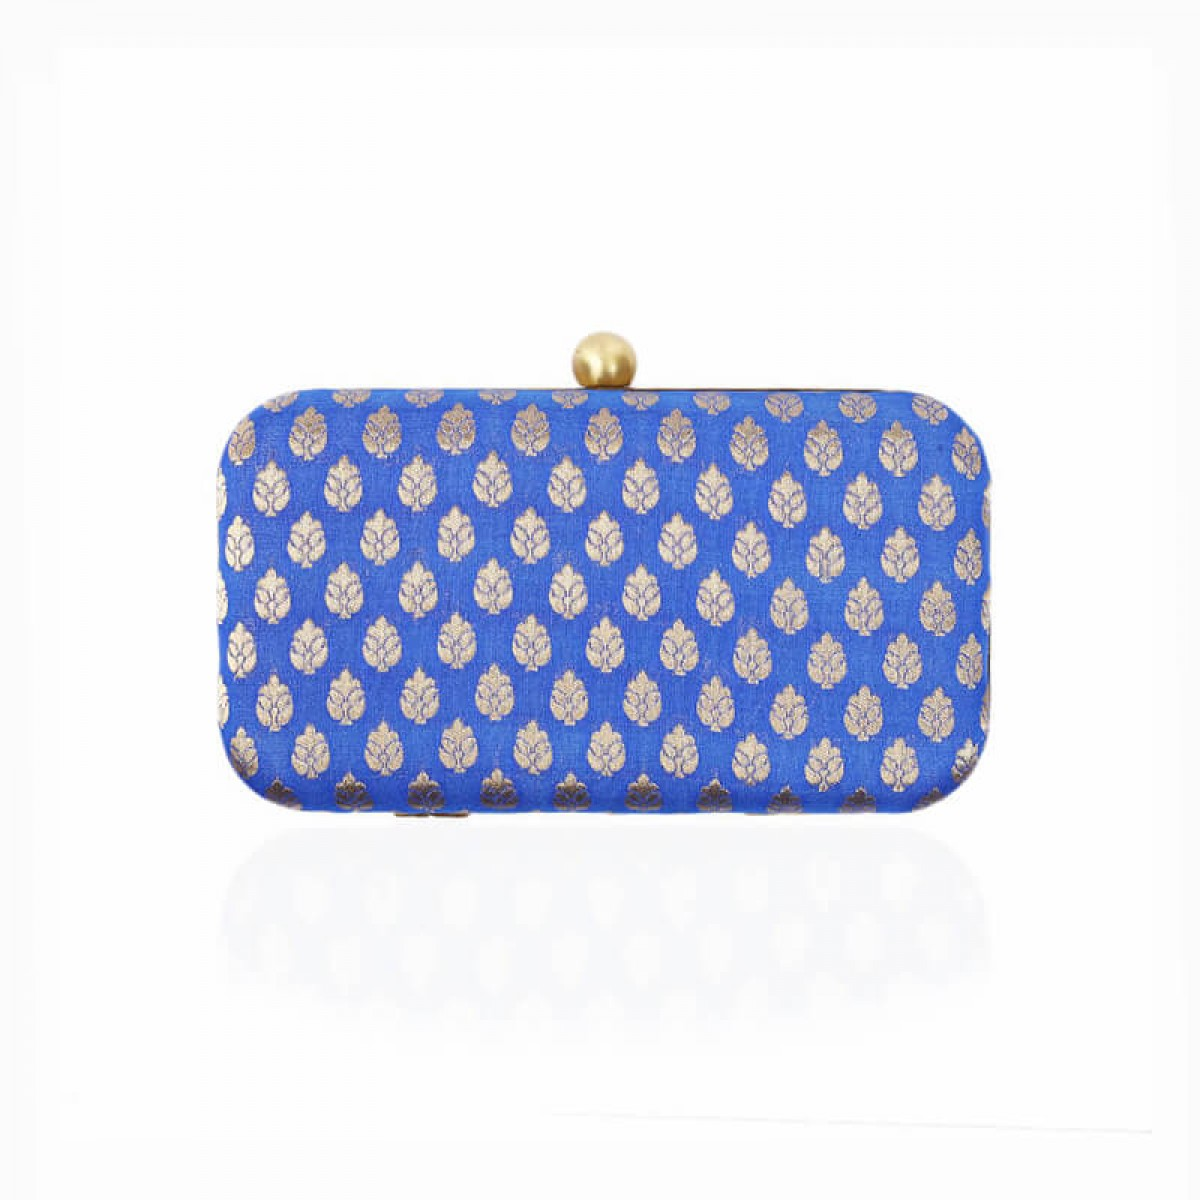 Evening Gold Flower Clutch Bag - Blue